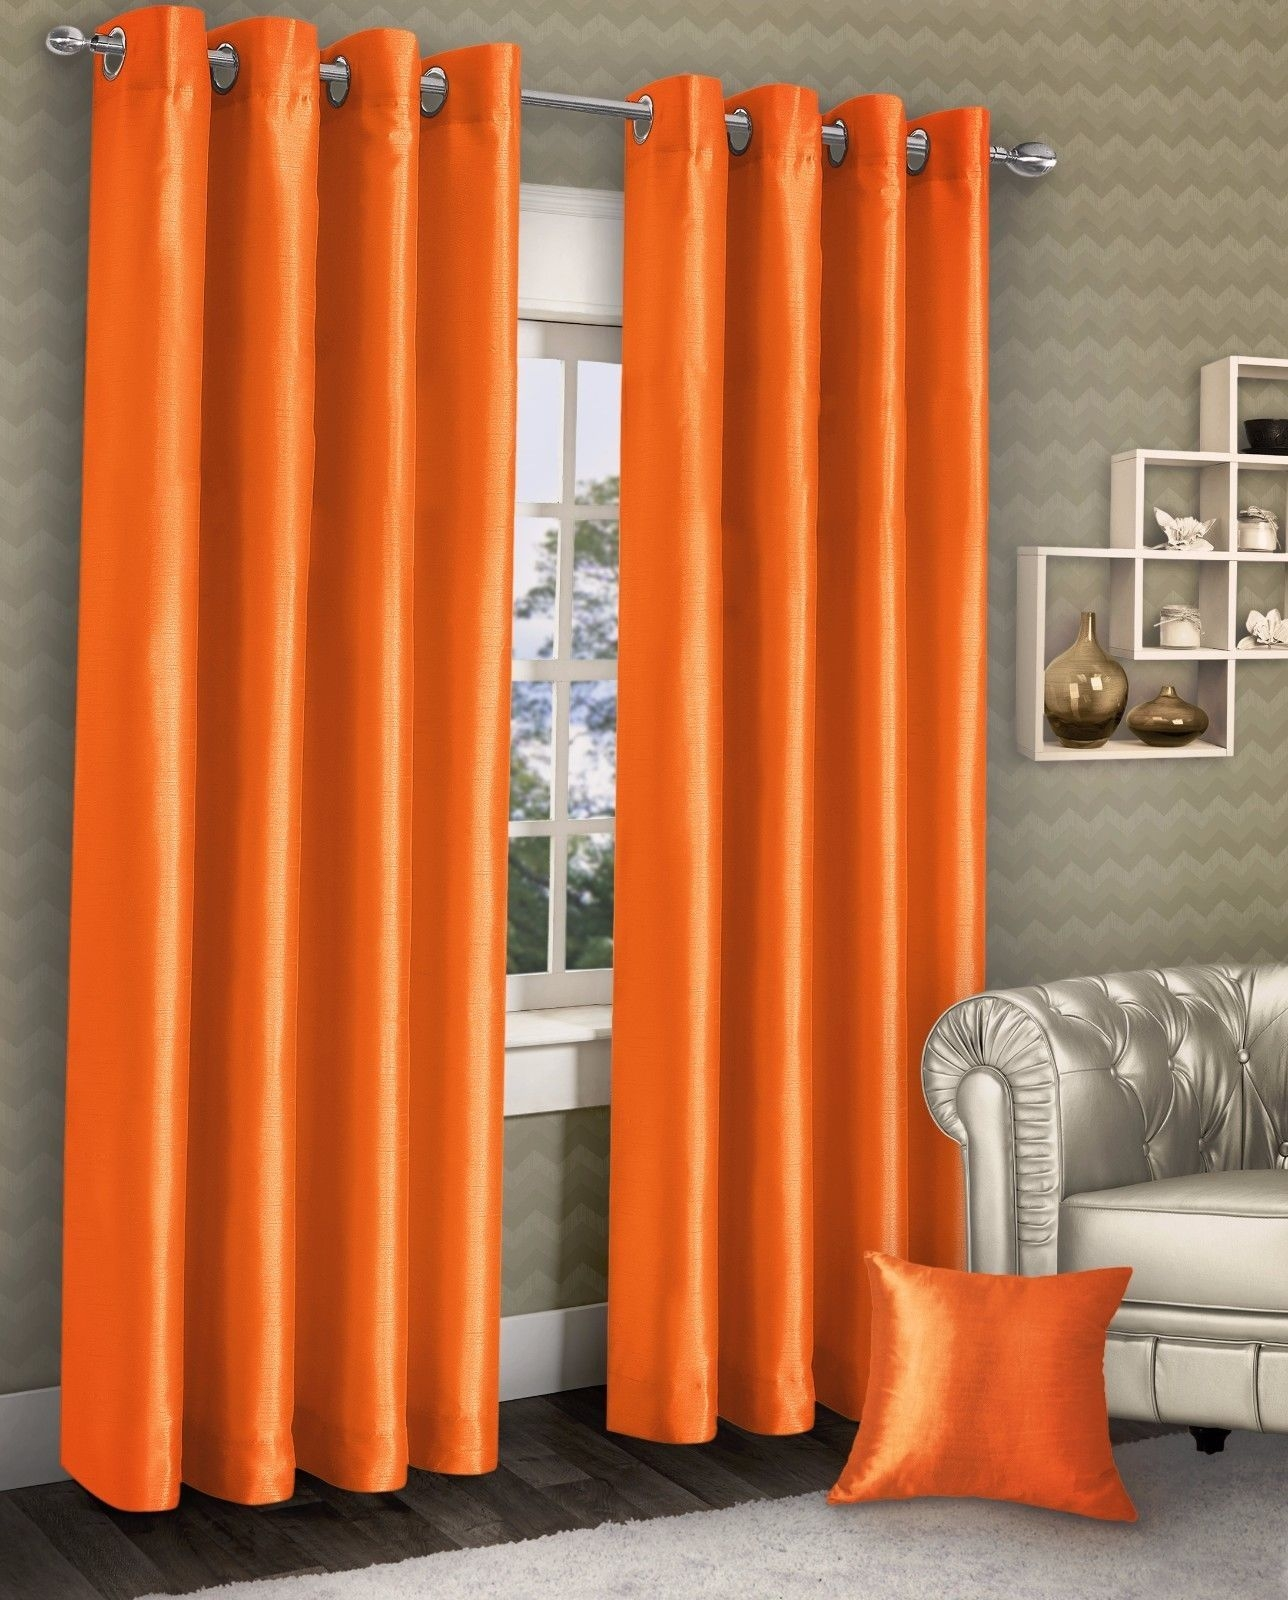 Orange Silk Curtains Pertaining To Orange Silk Curtains (Image 13 of 15)